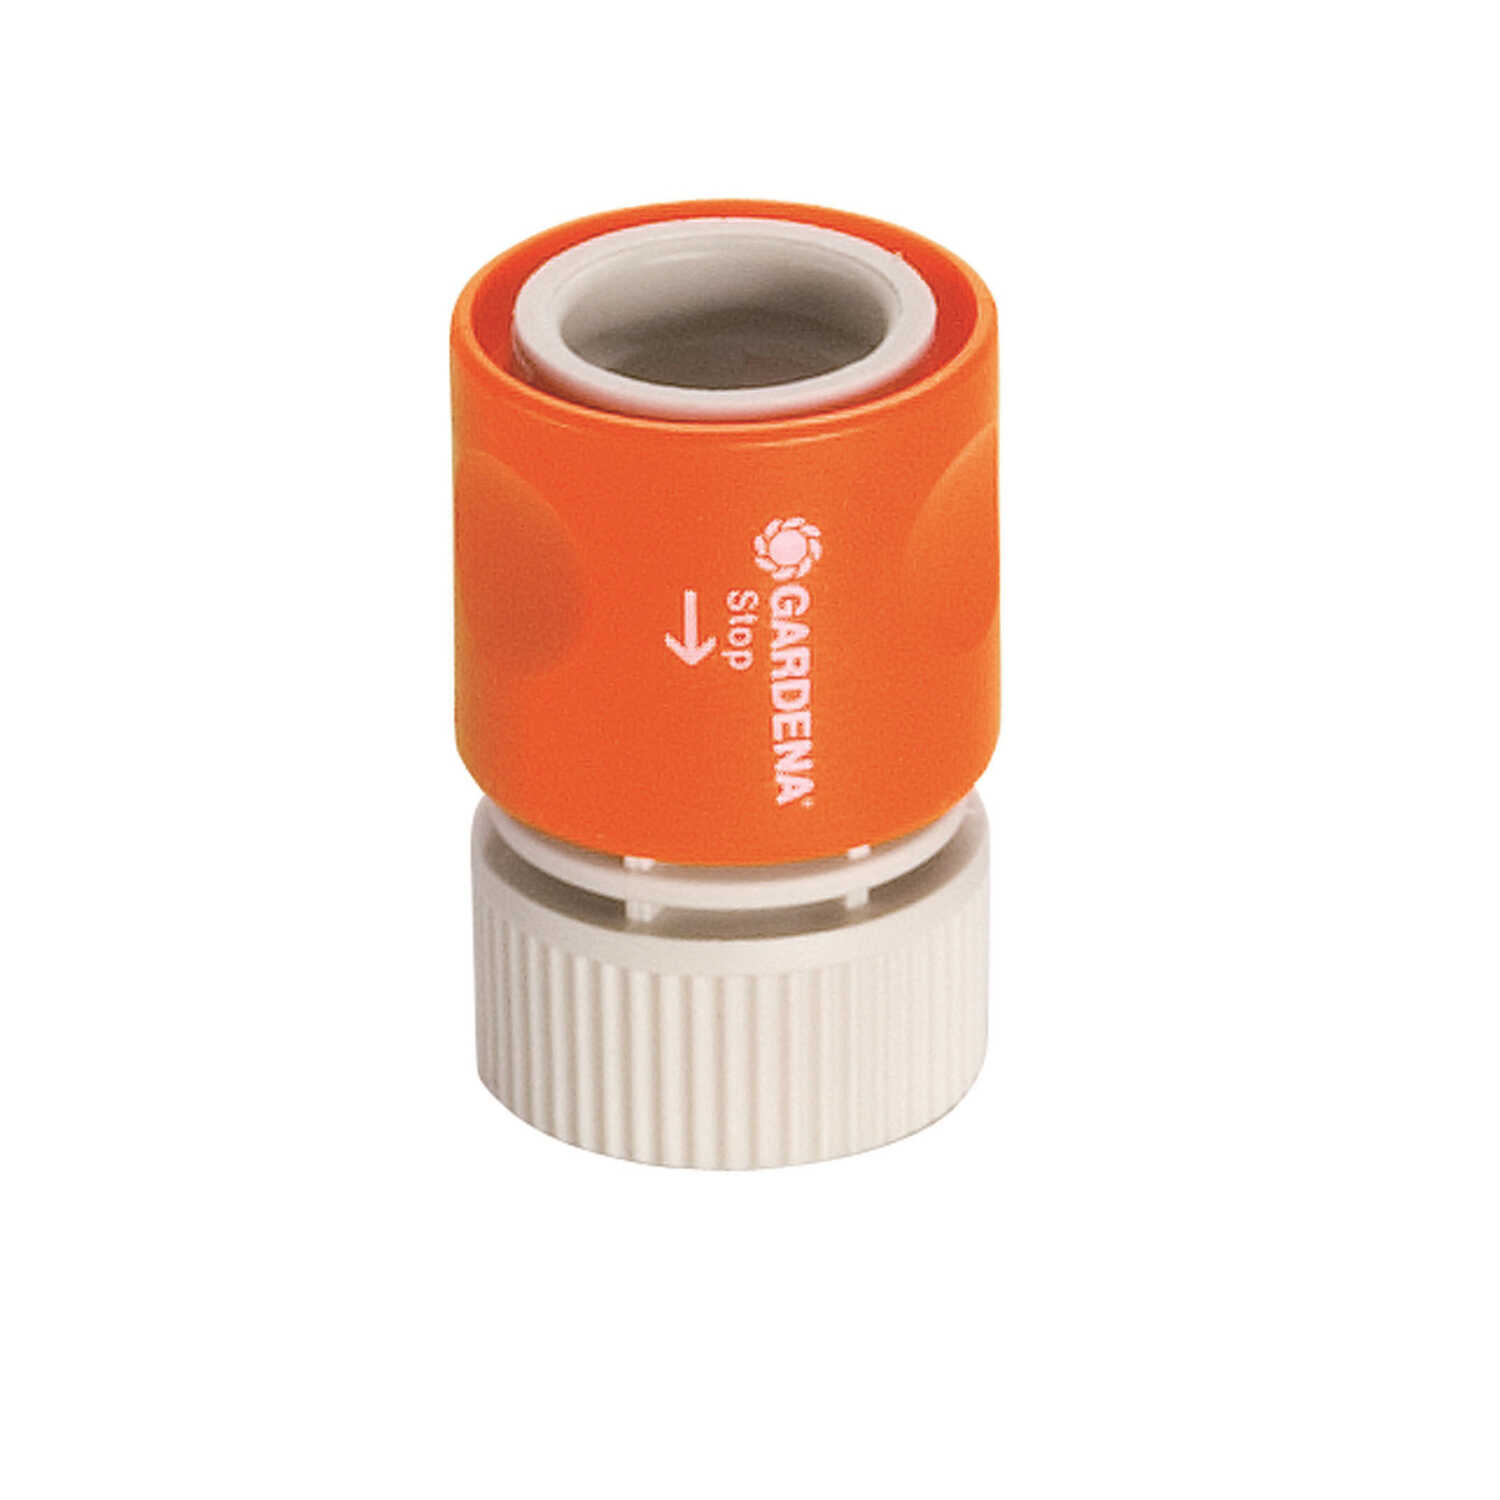 Gardena  5/8 & 1/2 in. Nylon/ABS  Threaded  Male  Hose Connector with Water Stop